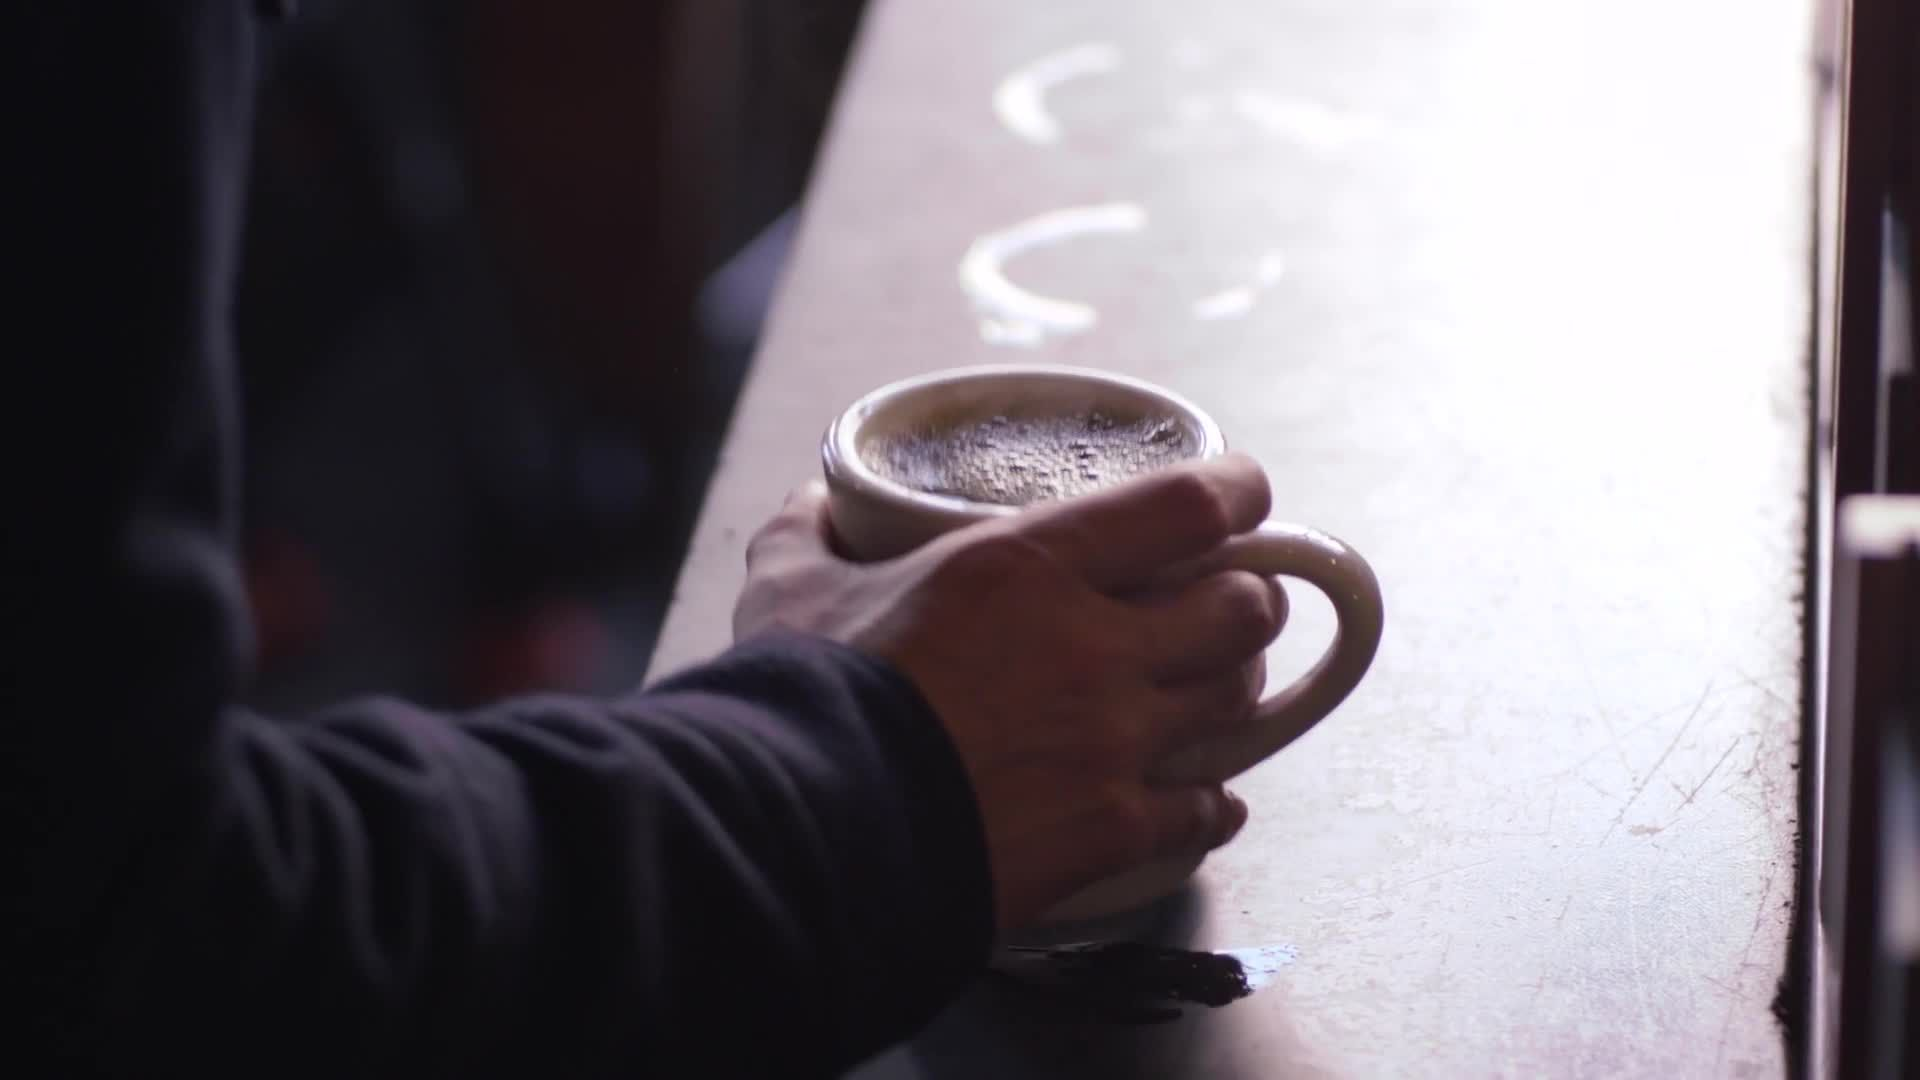 Watch a Clip From 'A Film About Coffee,' a New Documentary